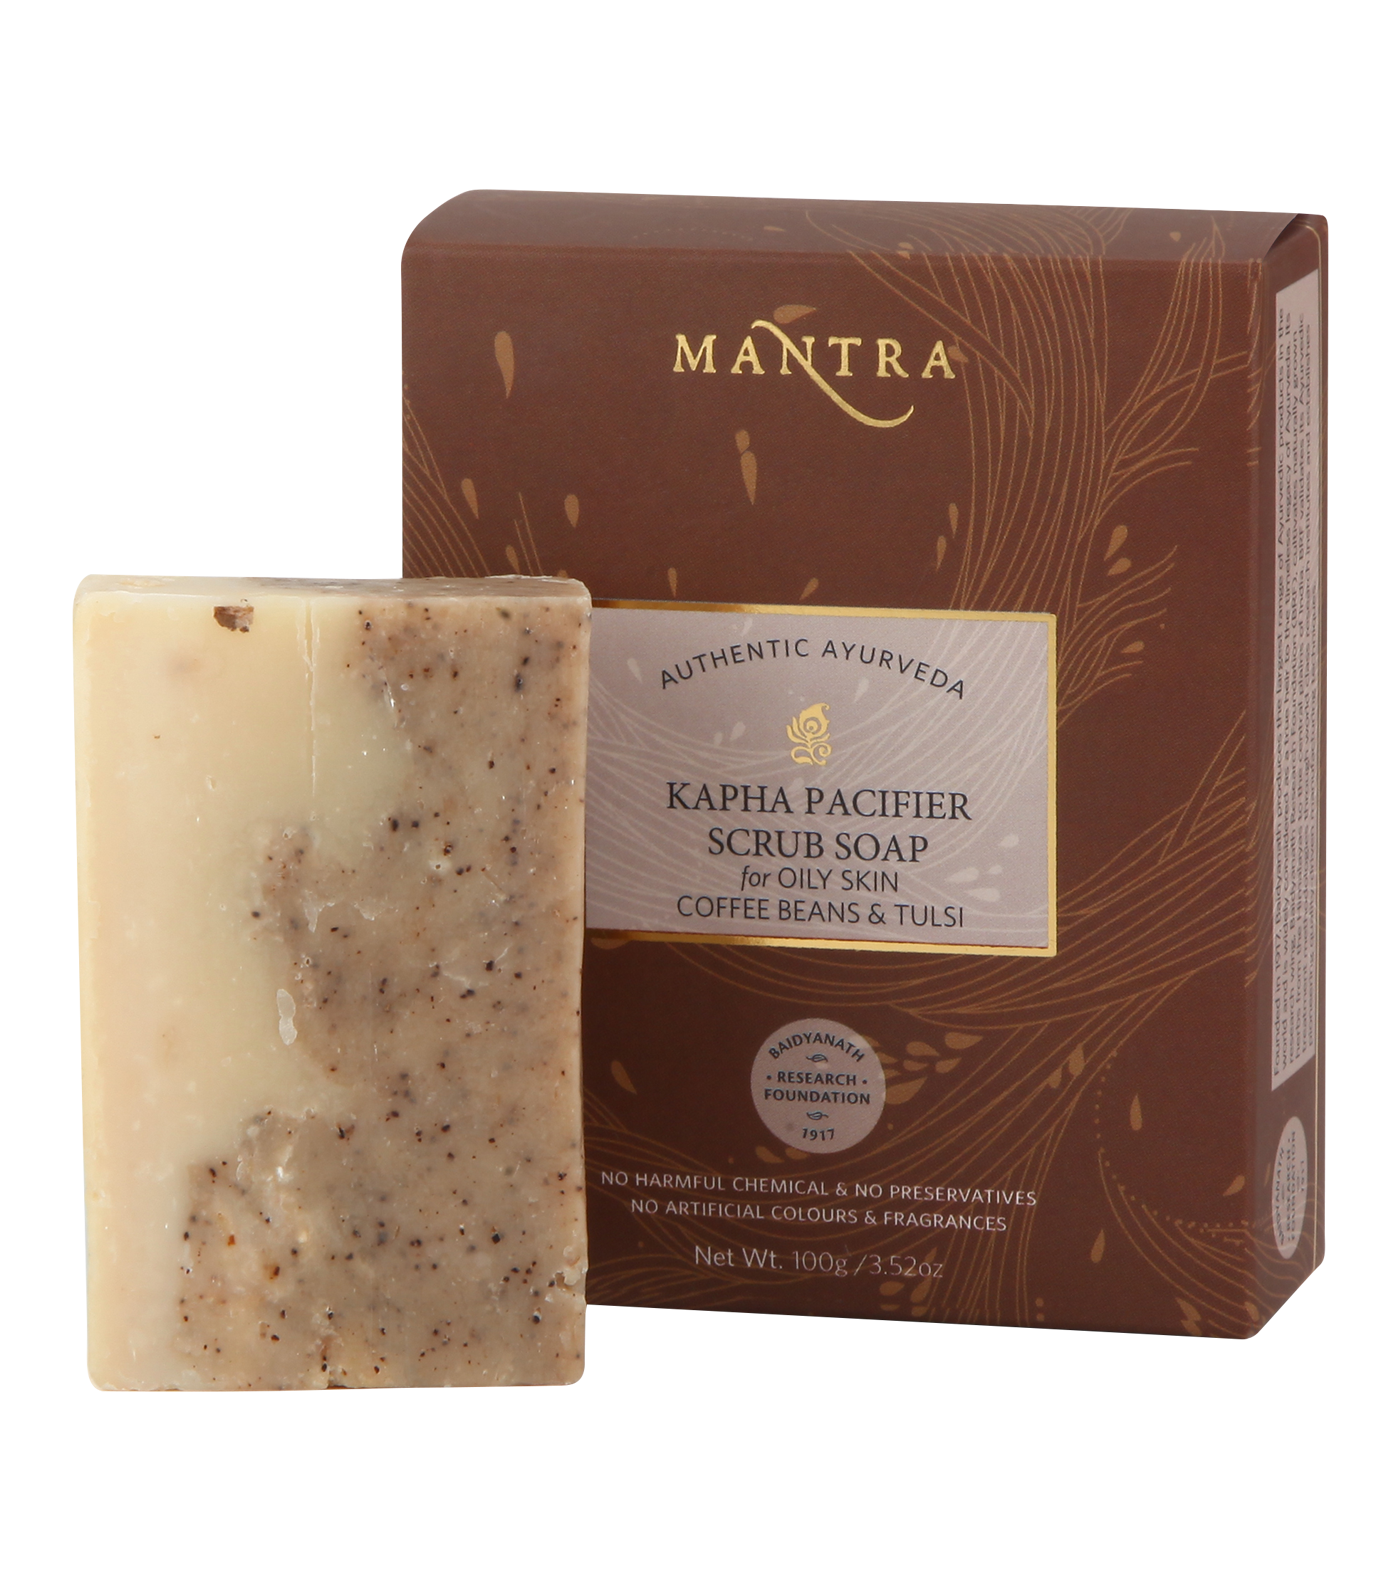 Kapha Pacifier Scrub Soap for Oily Skin Coffee Beans & Tulsi